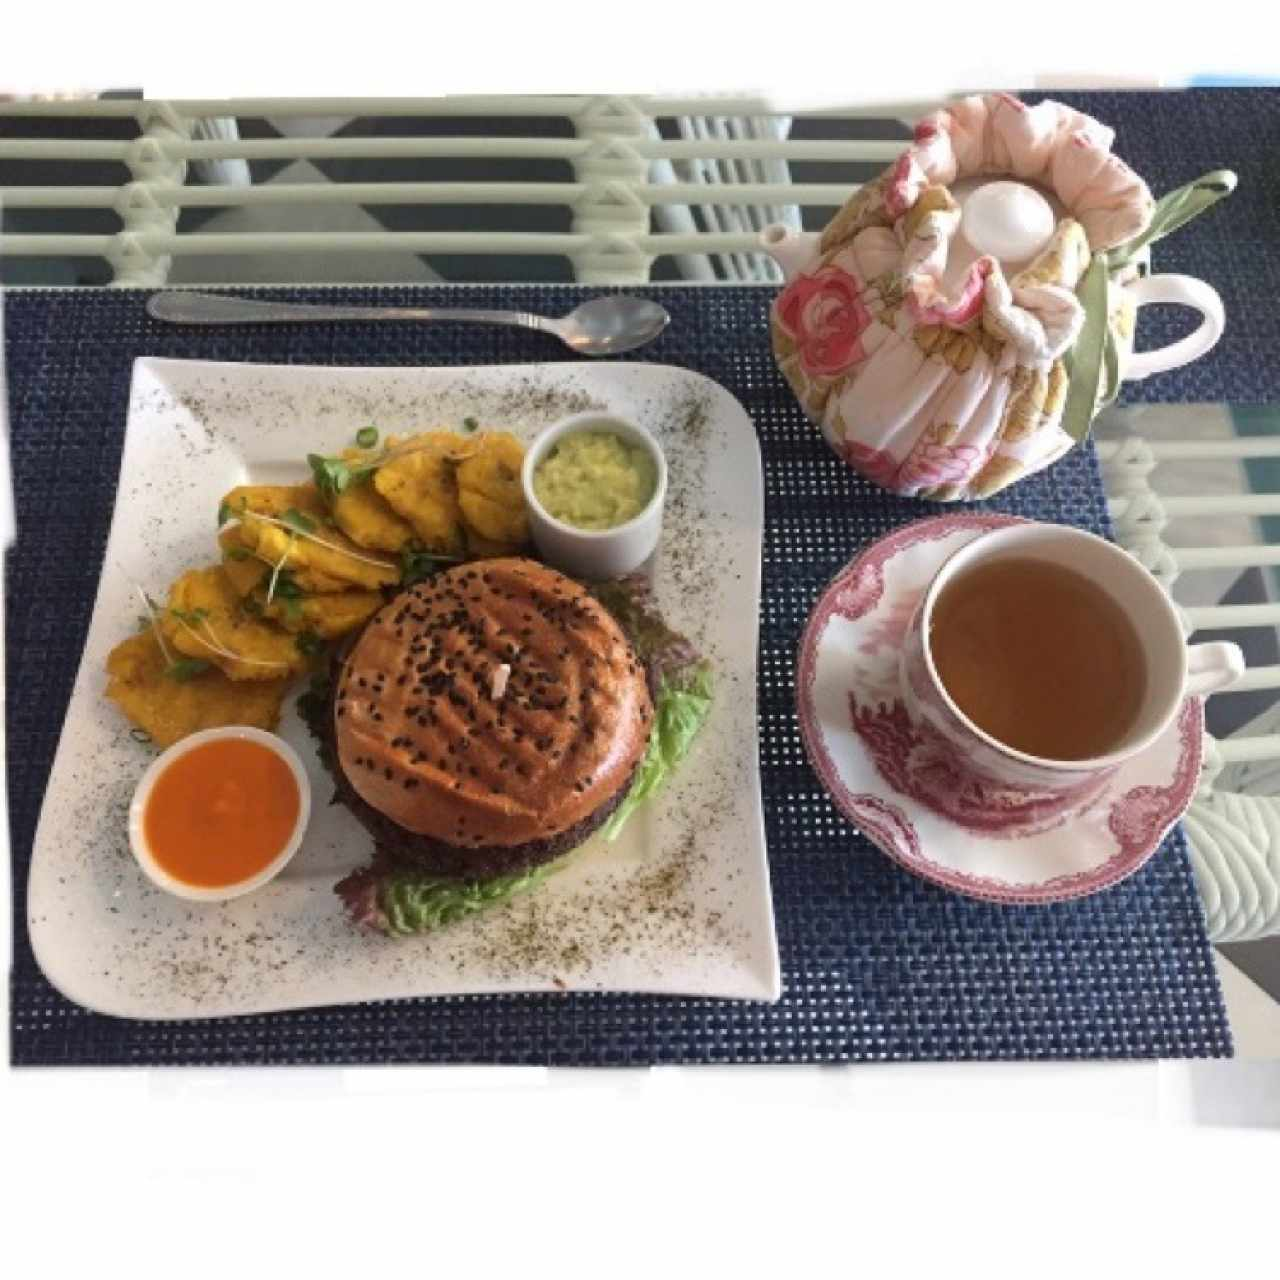 Quinoa burger, detox tea